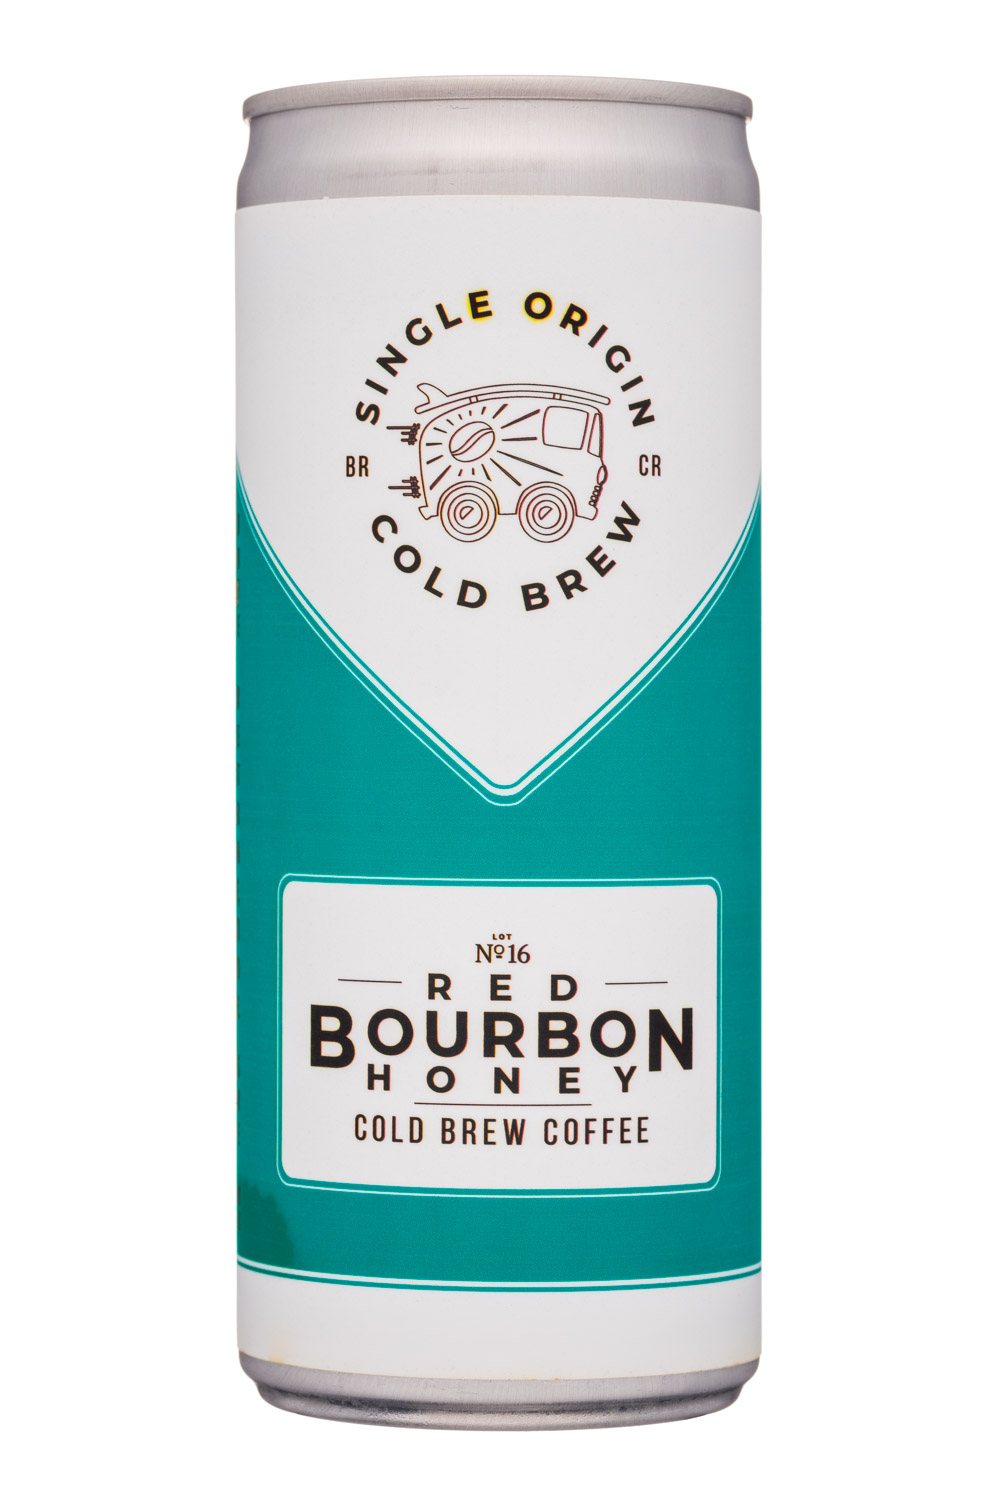 Single Origin Cold Brew: Red Bourbon Honey